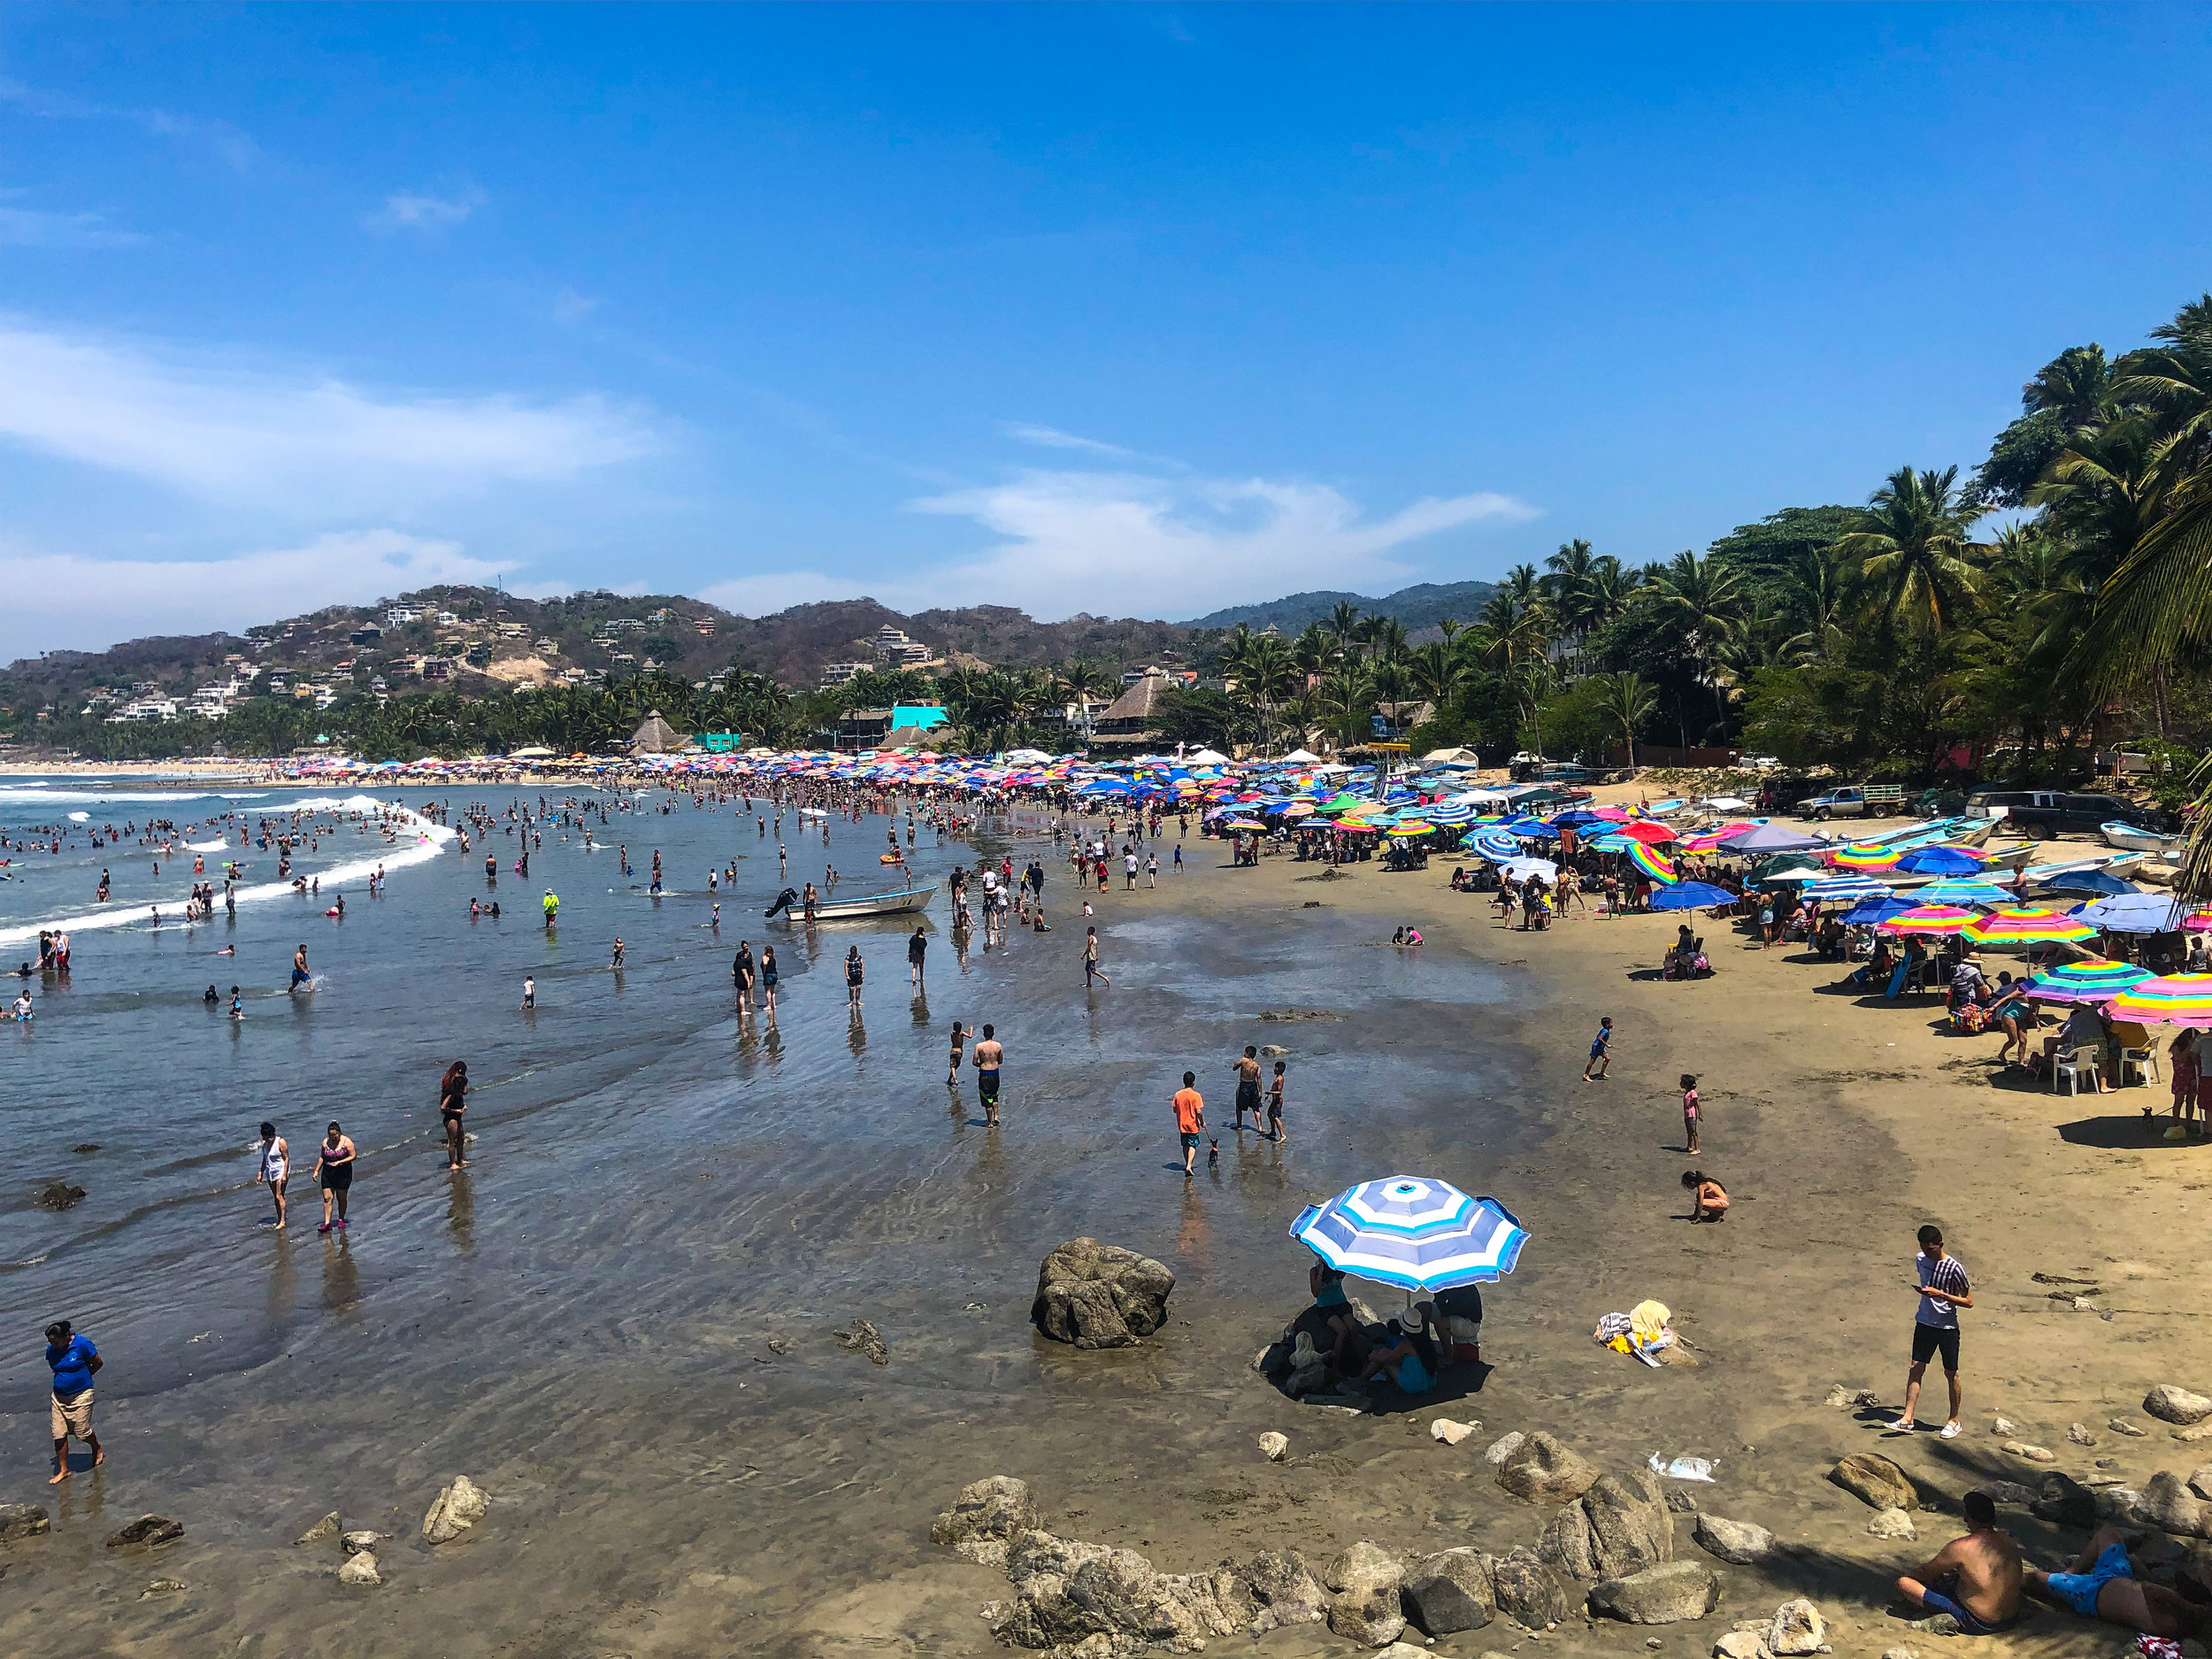 The beaches were packed